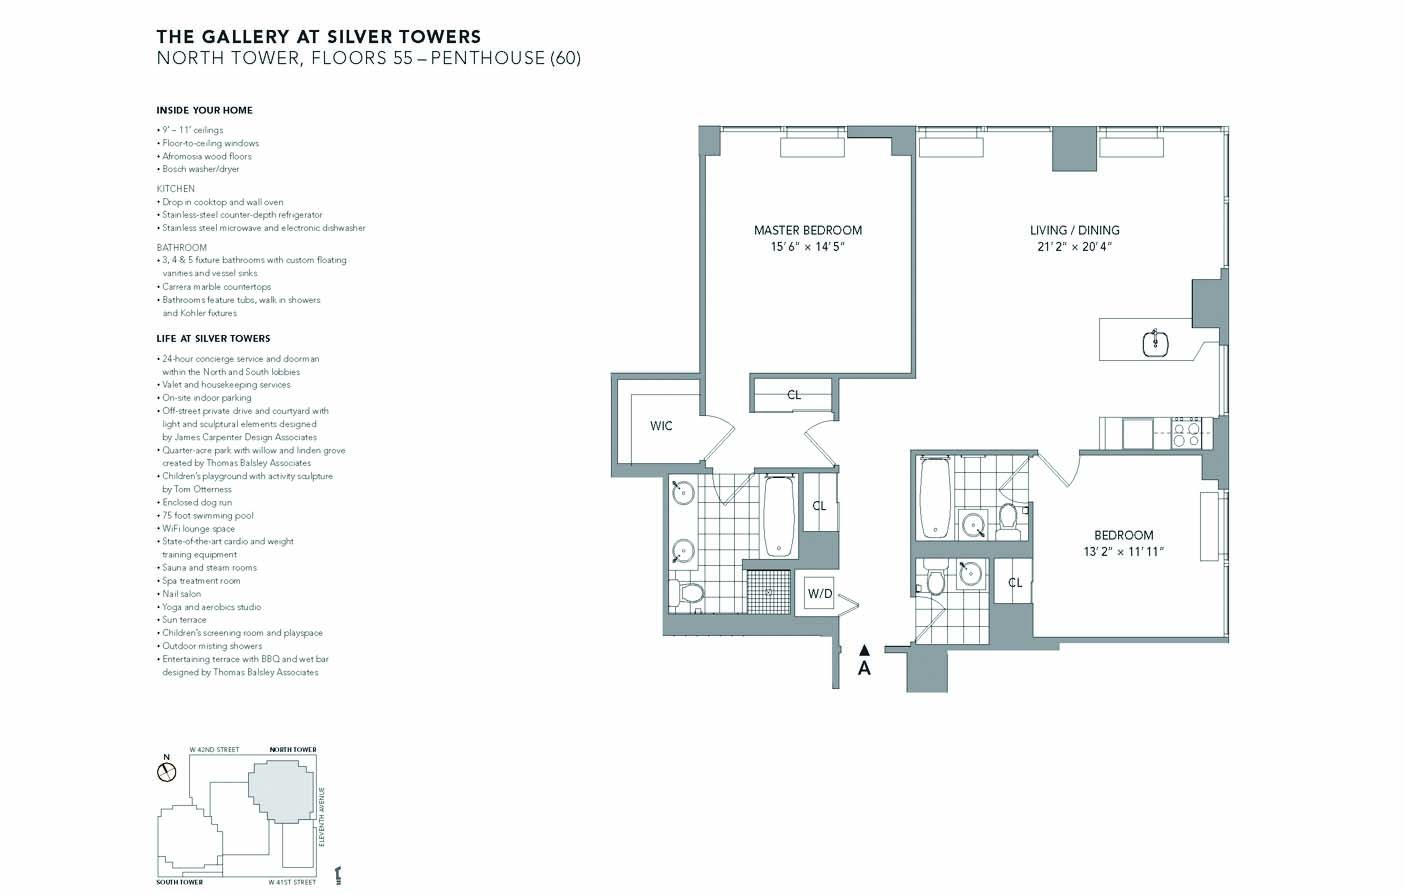 Amazing 2br 2 bath house plans 8 sky collection 2br a floors 55 60 floor - Two floor house plans collection ...